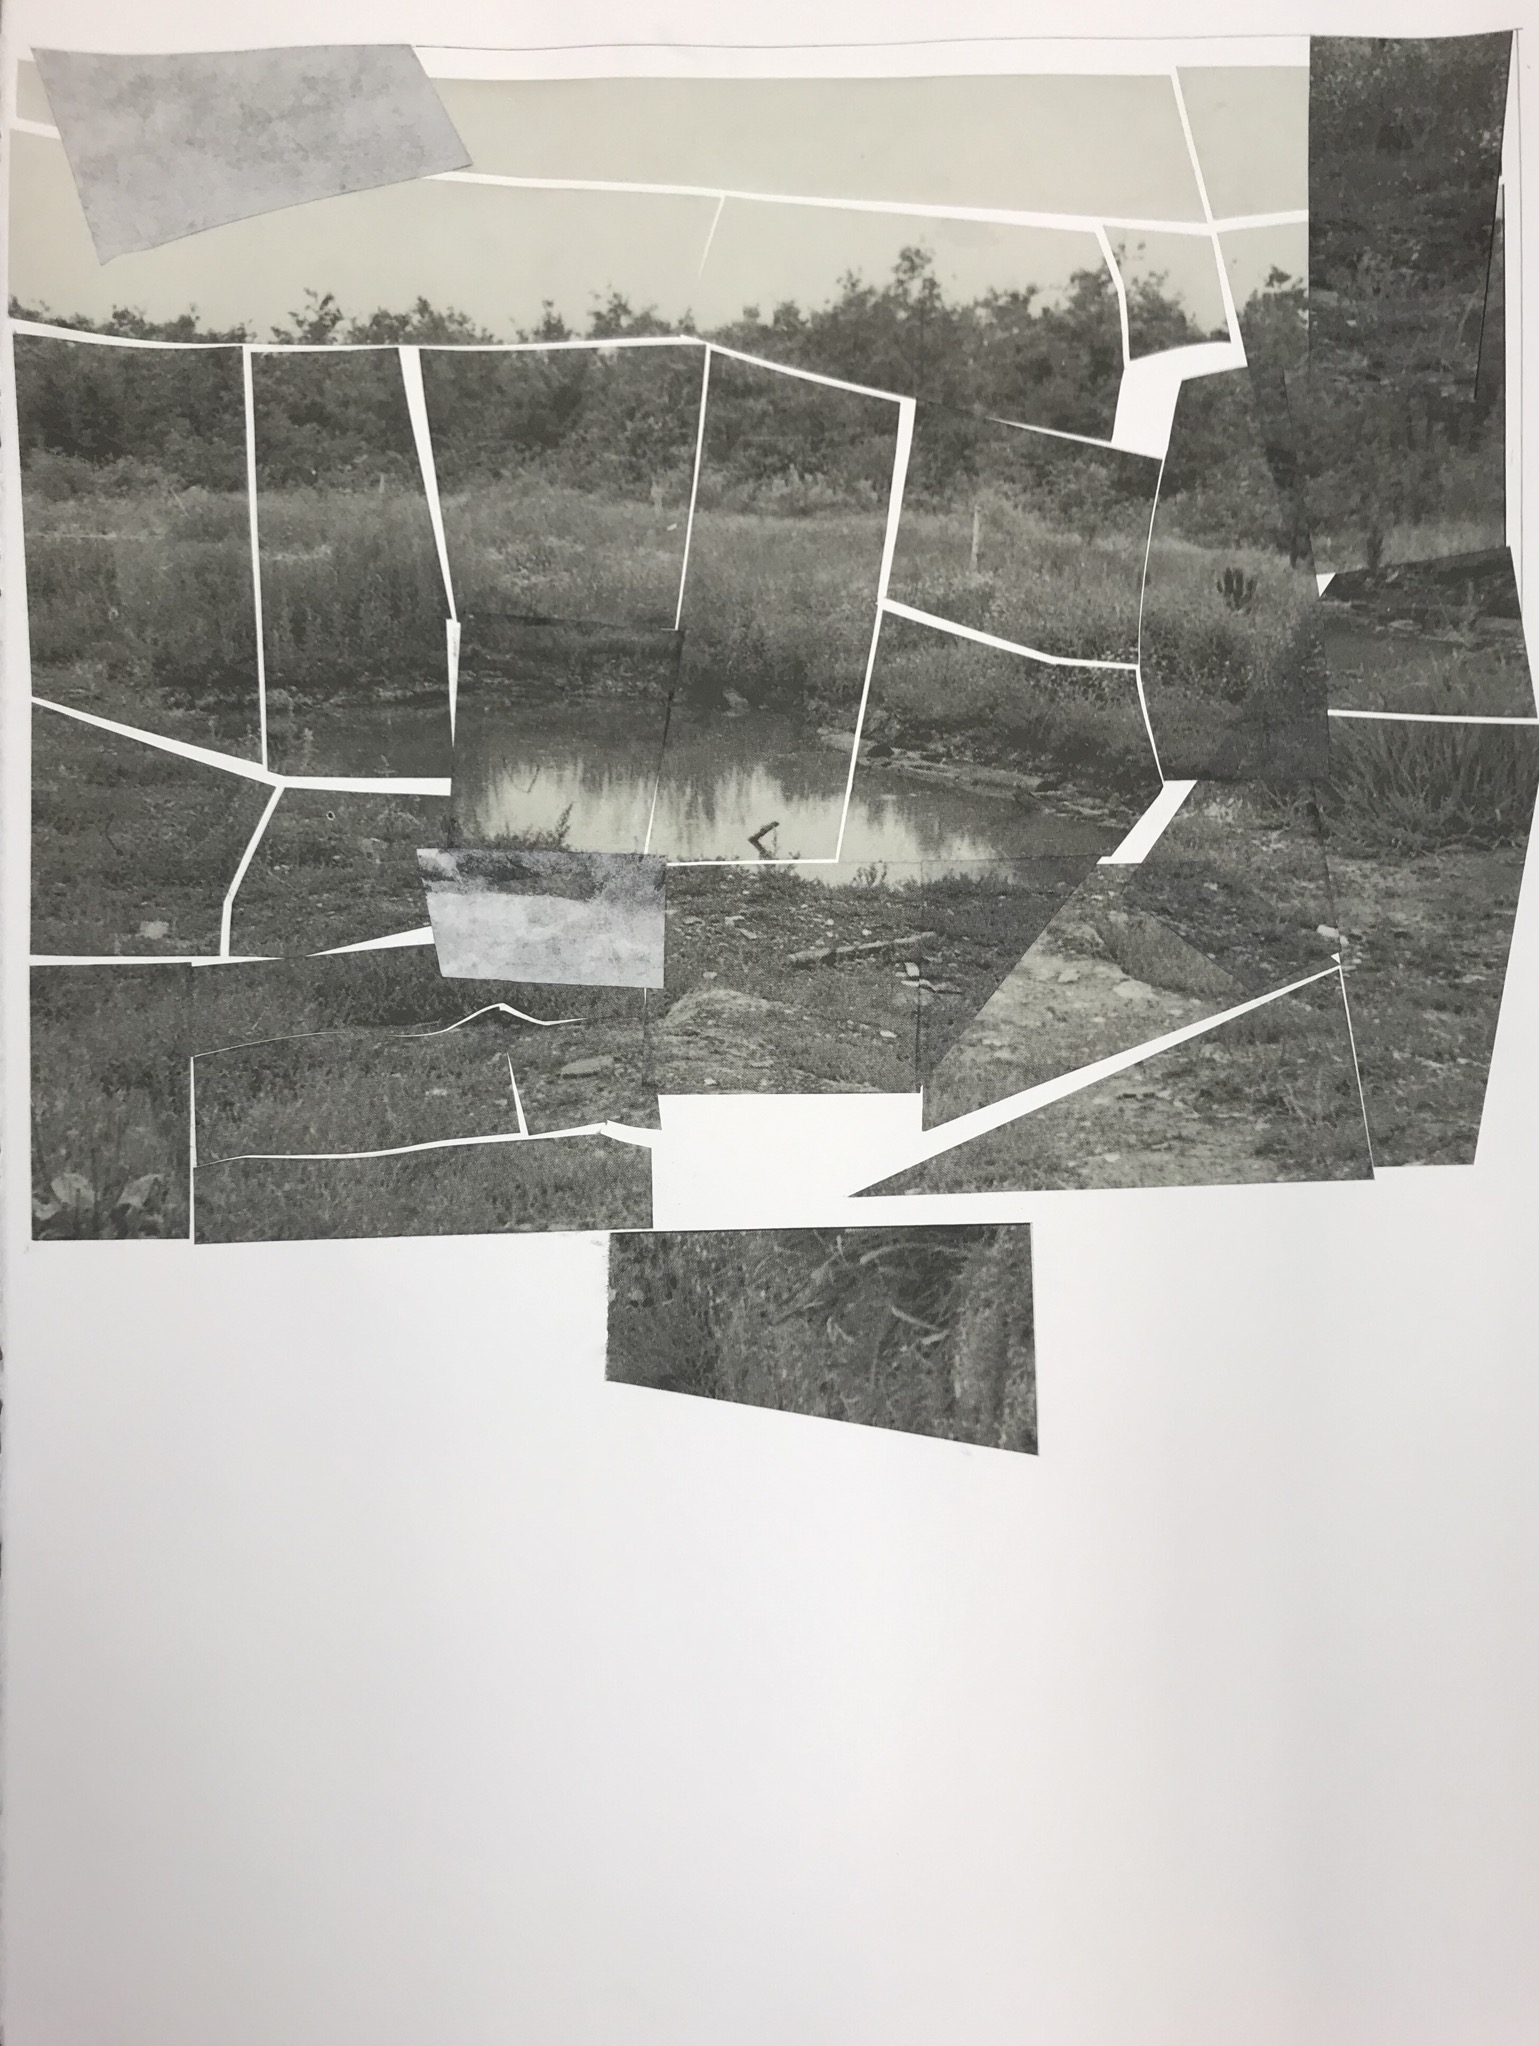 "Leo Hodson, Incineration, 2020, Cut-and-pasted paper and pencil on paper, 22x30"", Image Courtesy of the Artist"